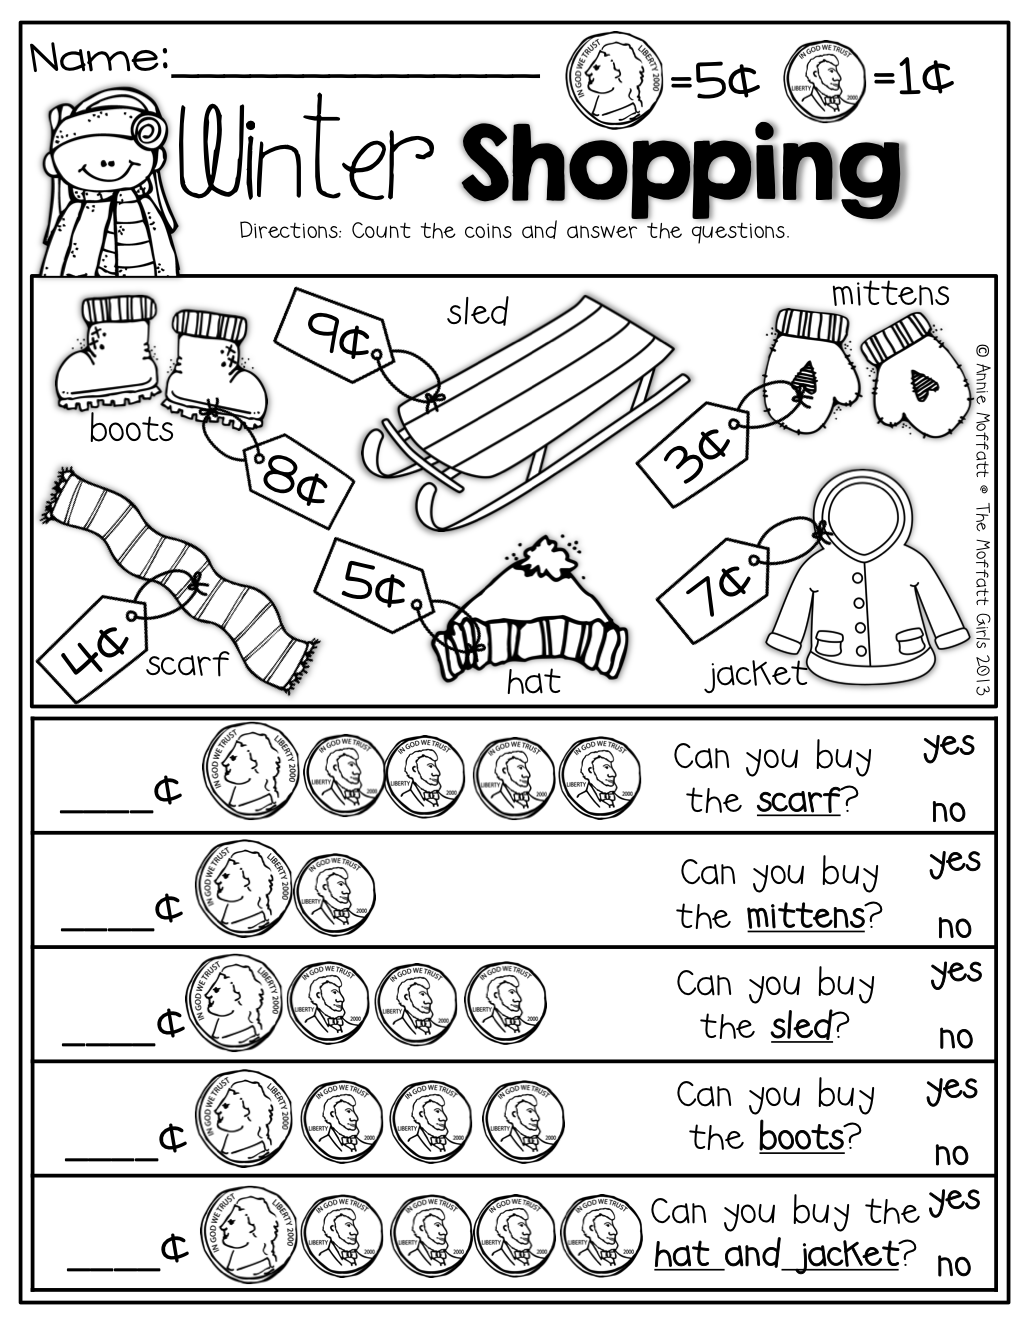 worksheet Comparing Money winter shopping with nickels and pennies prefect for adding up to this is an excellent math activity that integrates learning about money weather clothing choices real life scenarios